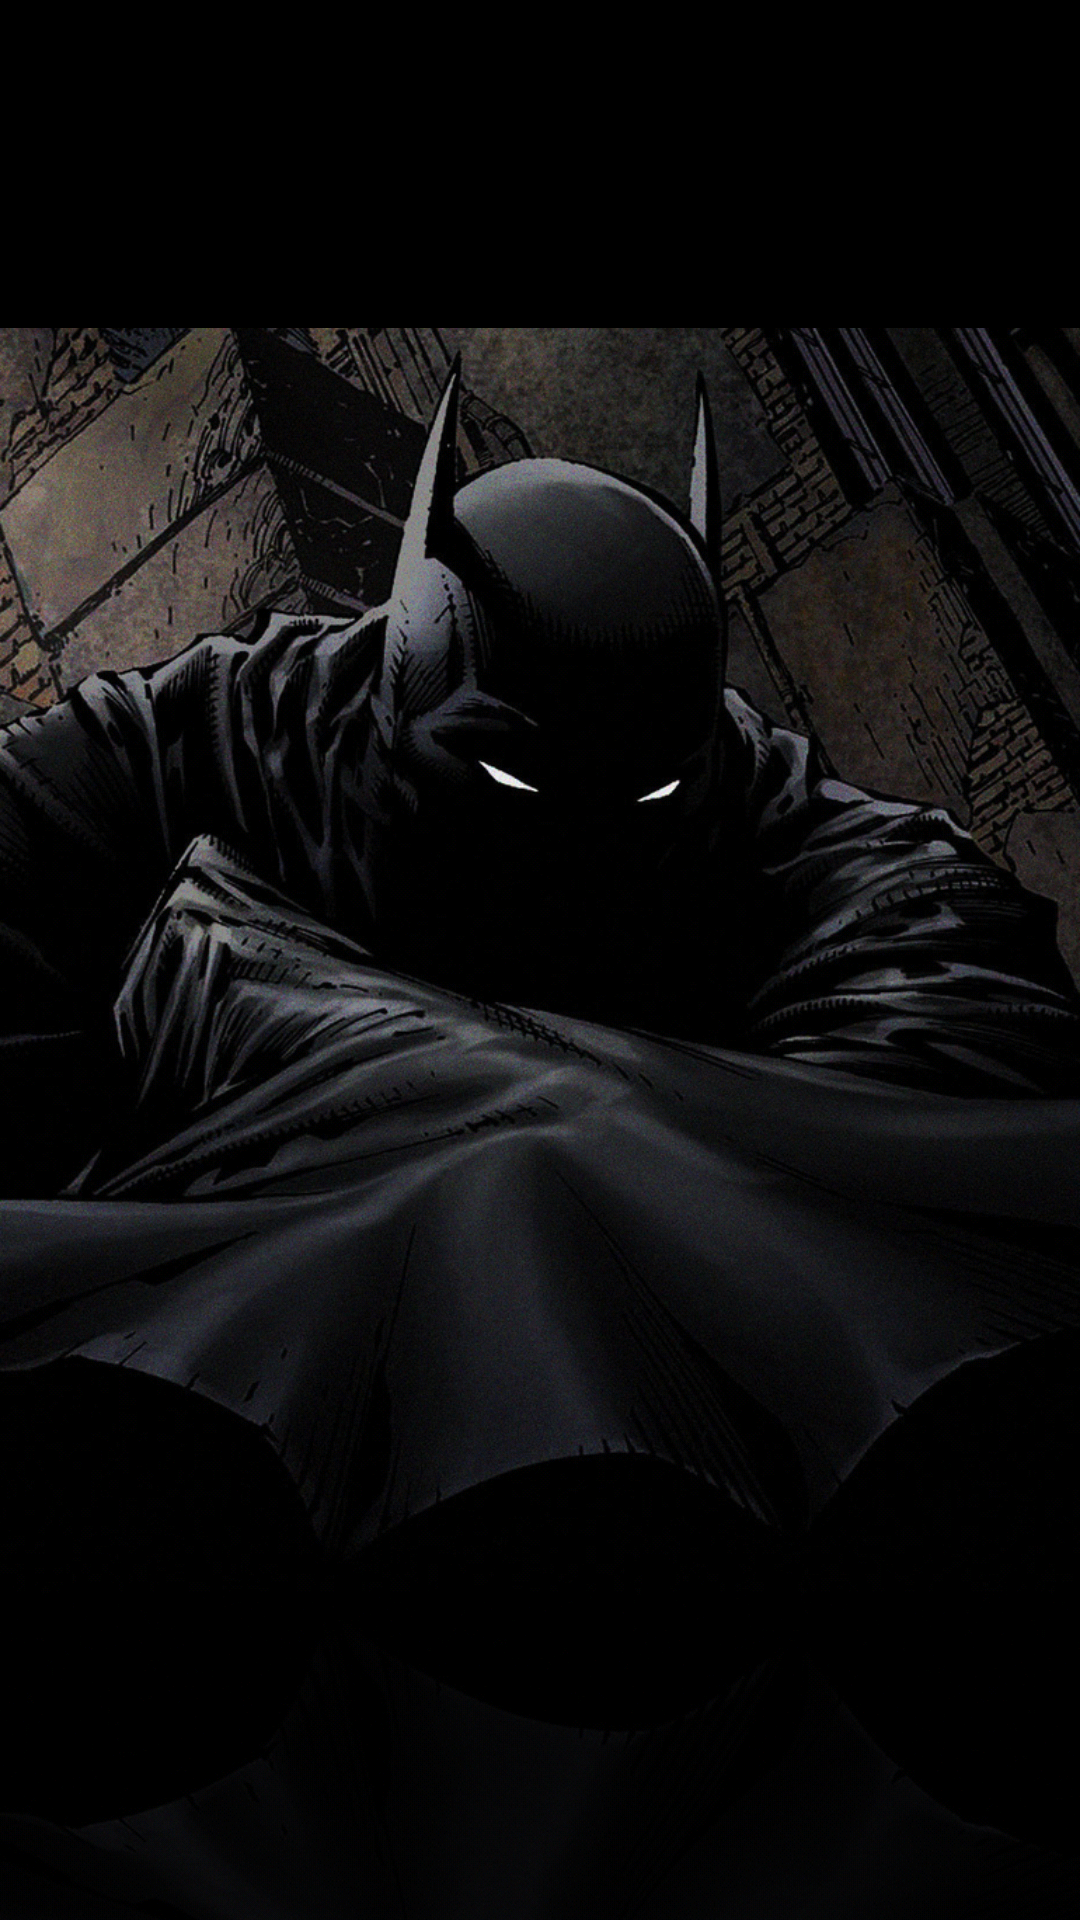 Batman wallpaper hd for android free download batman wallpaper hd for android voltagebd Choice Image